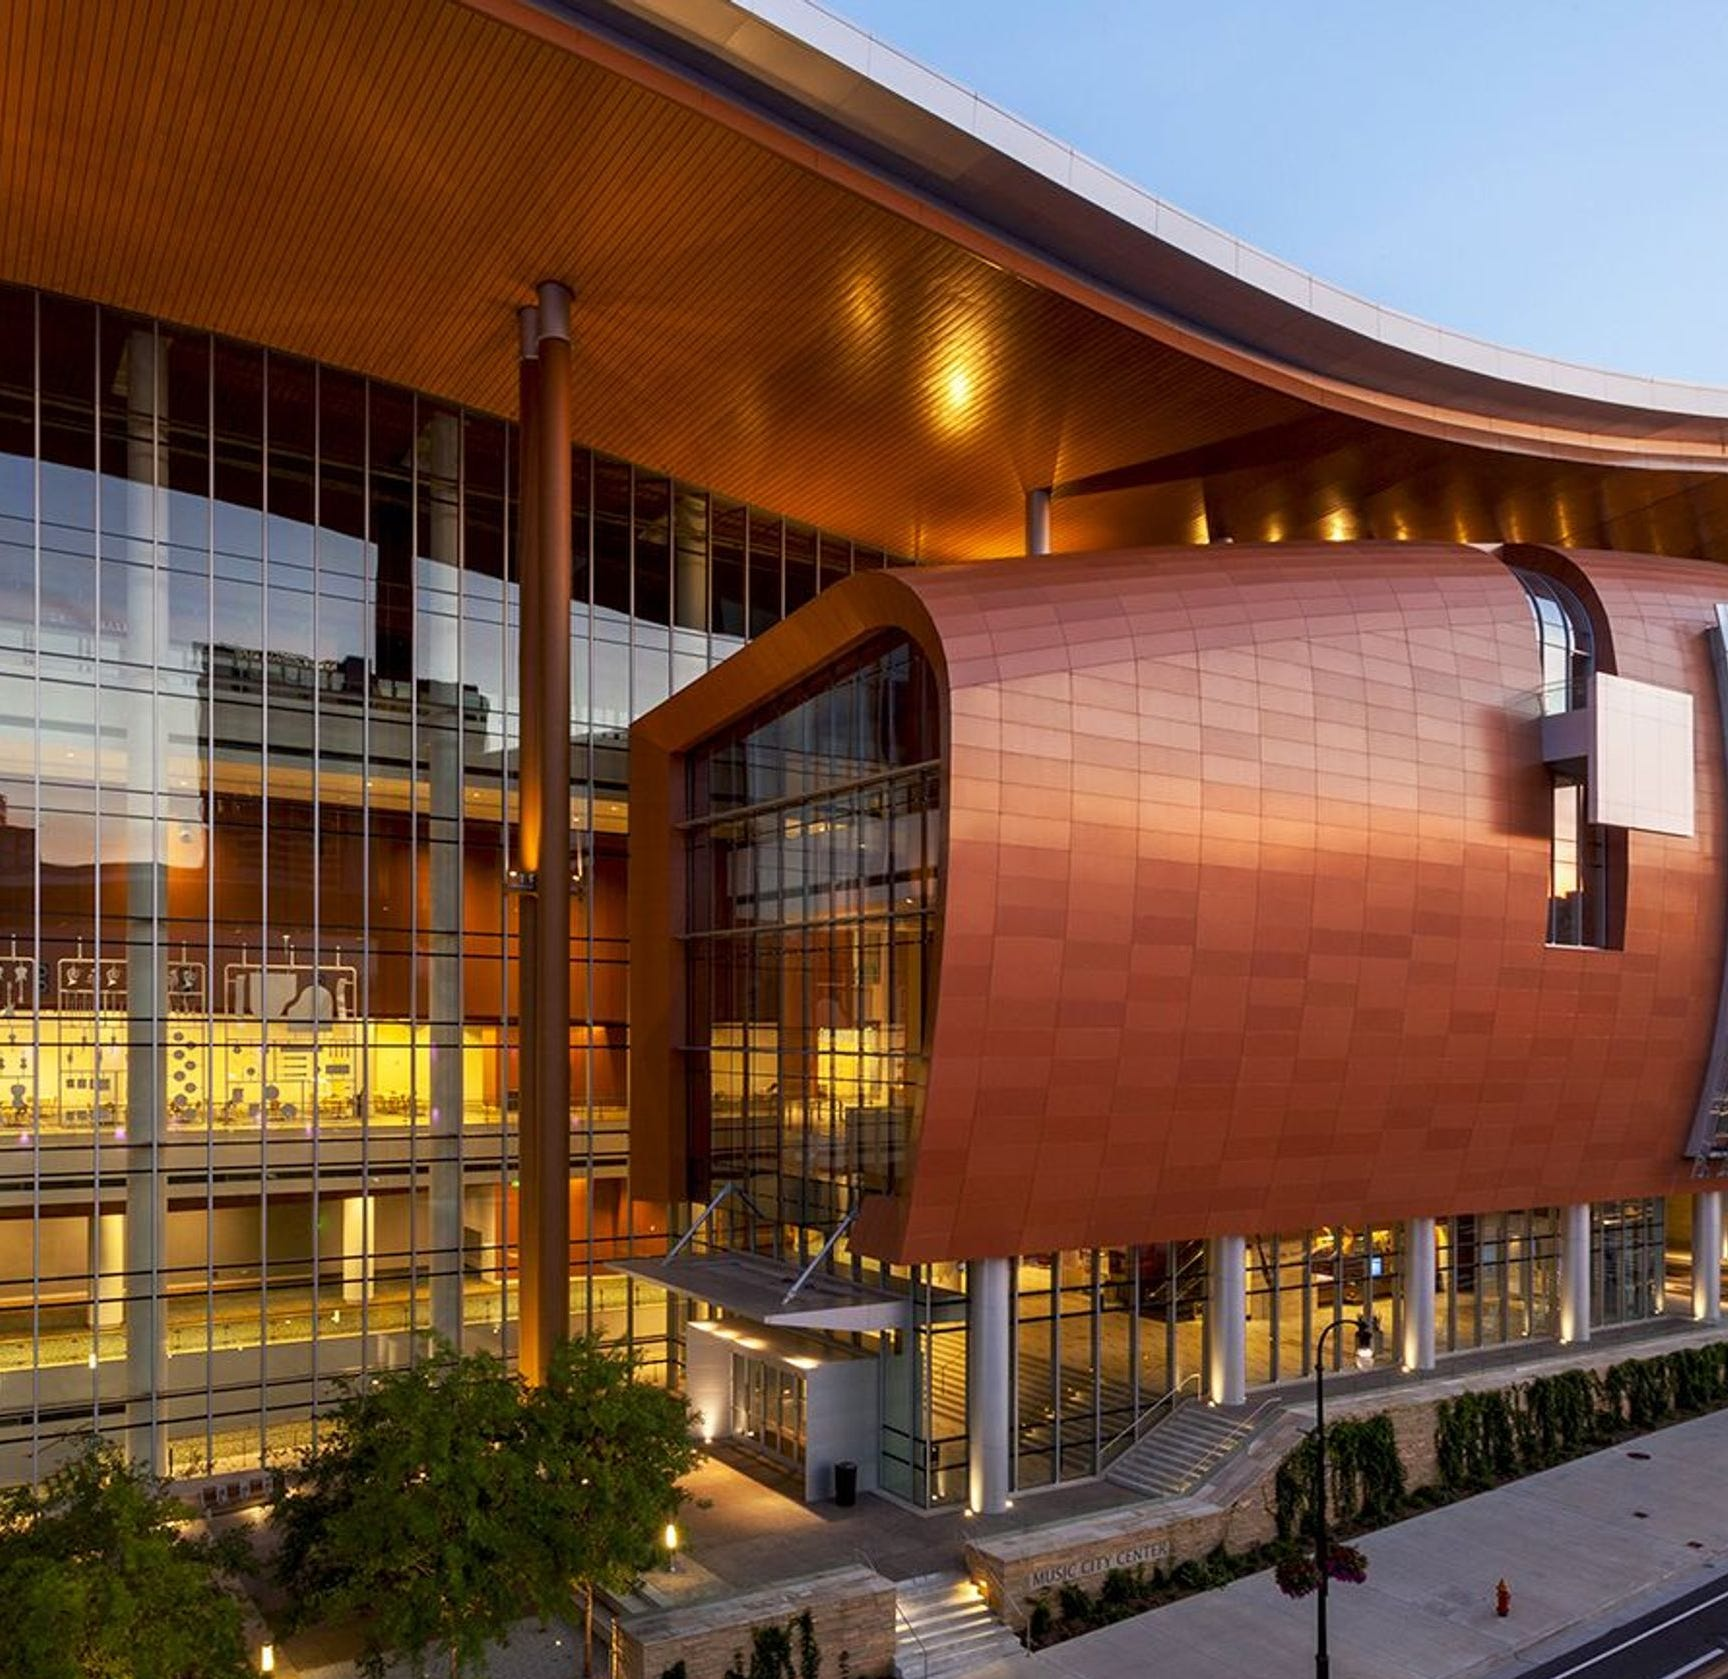 Music City Center chief says there's 'not enough space,' as convention center looks to expand